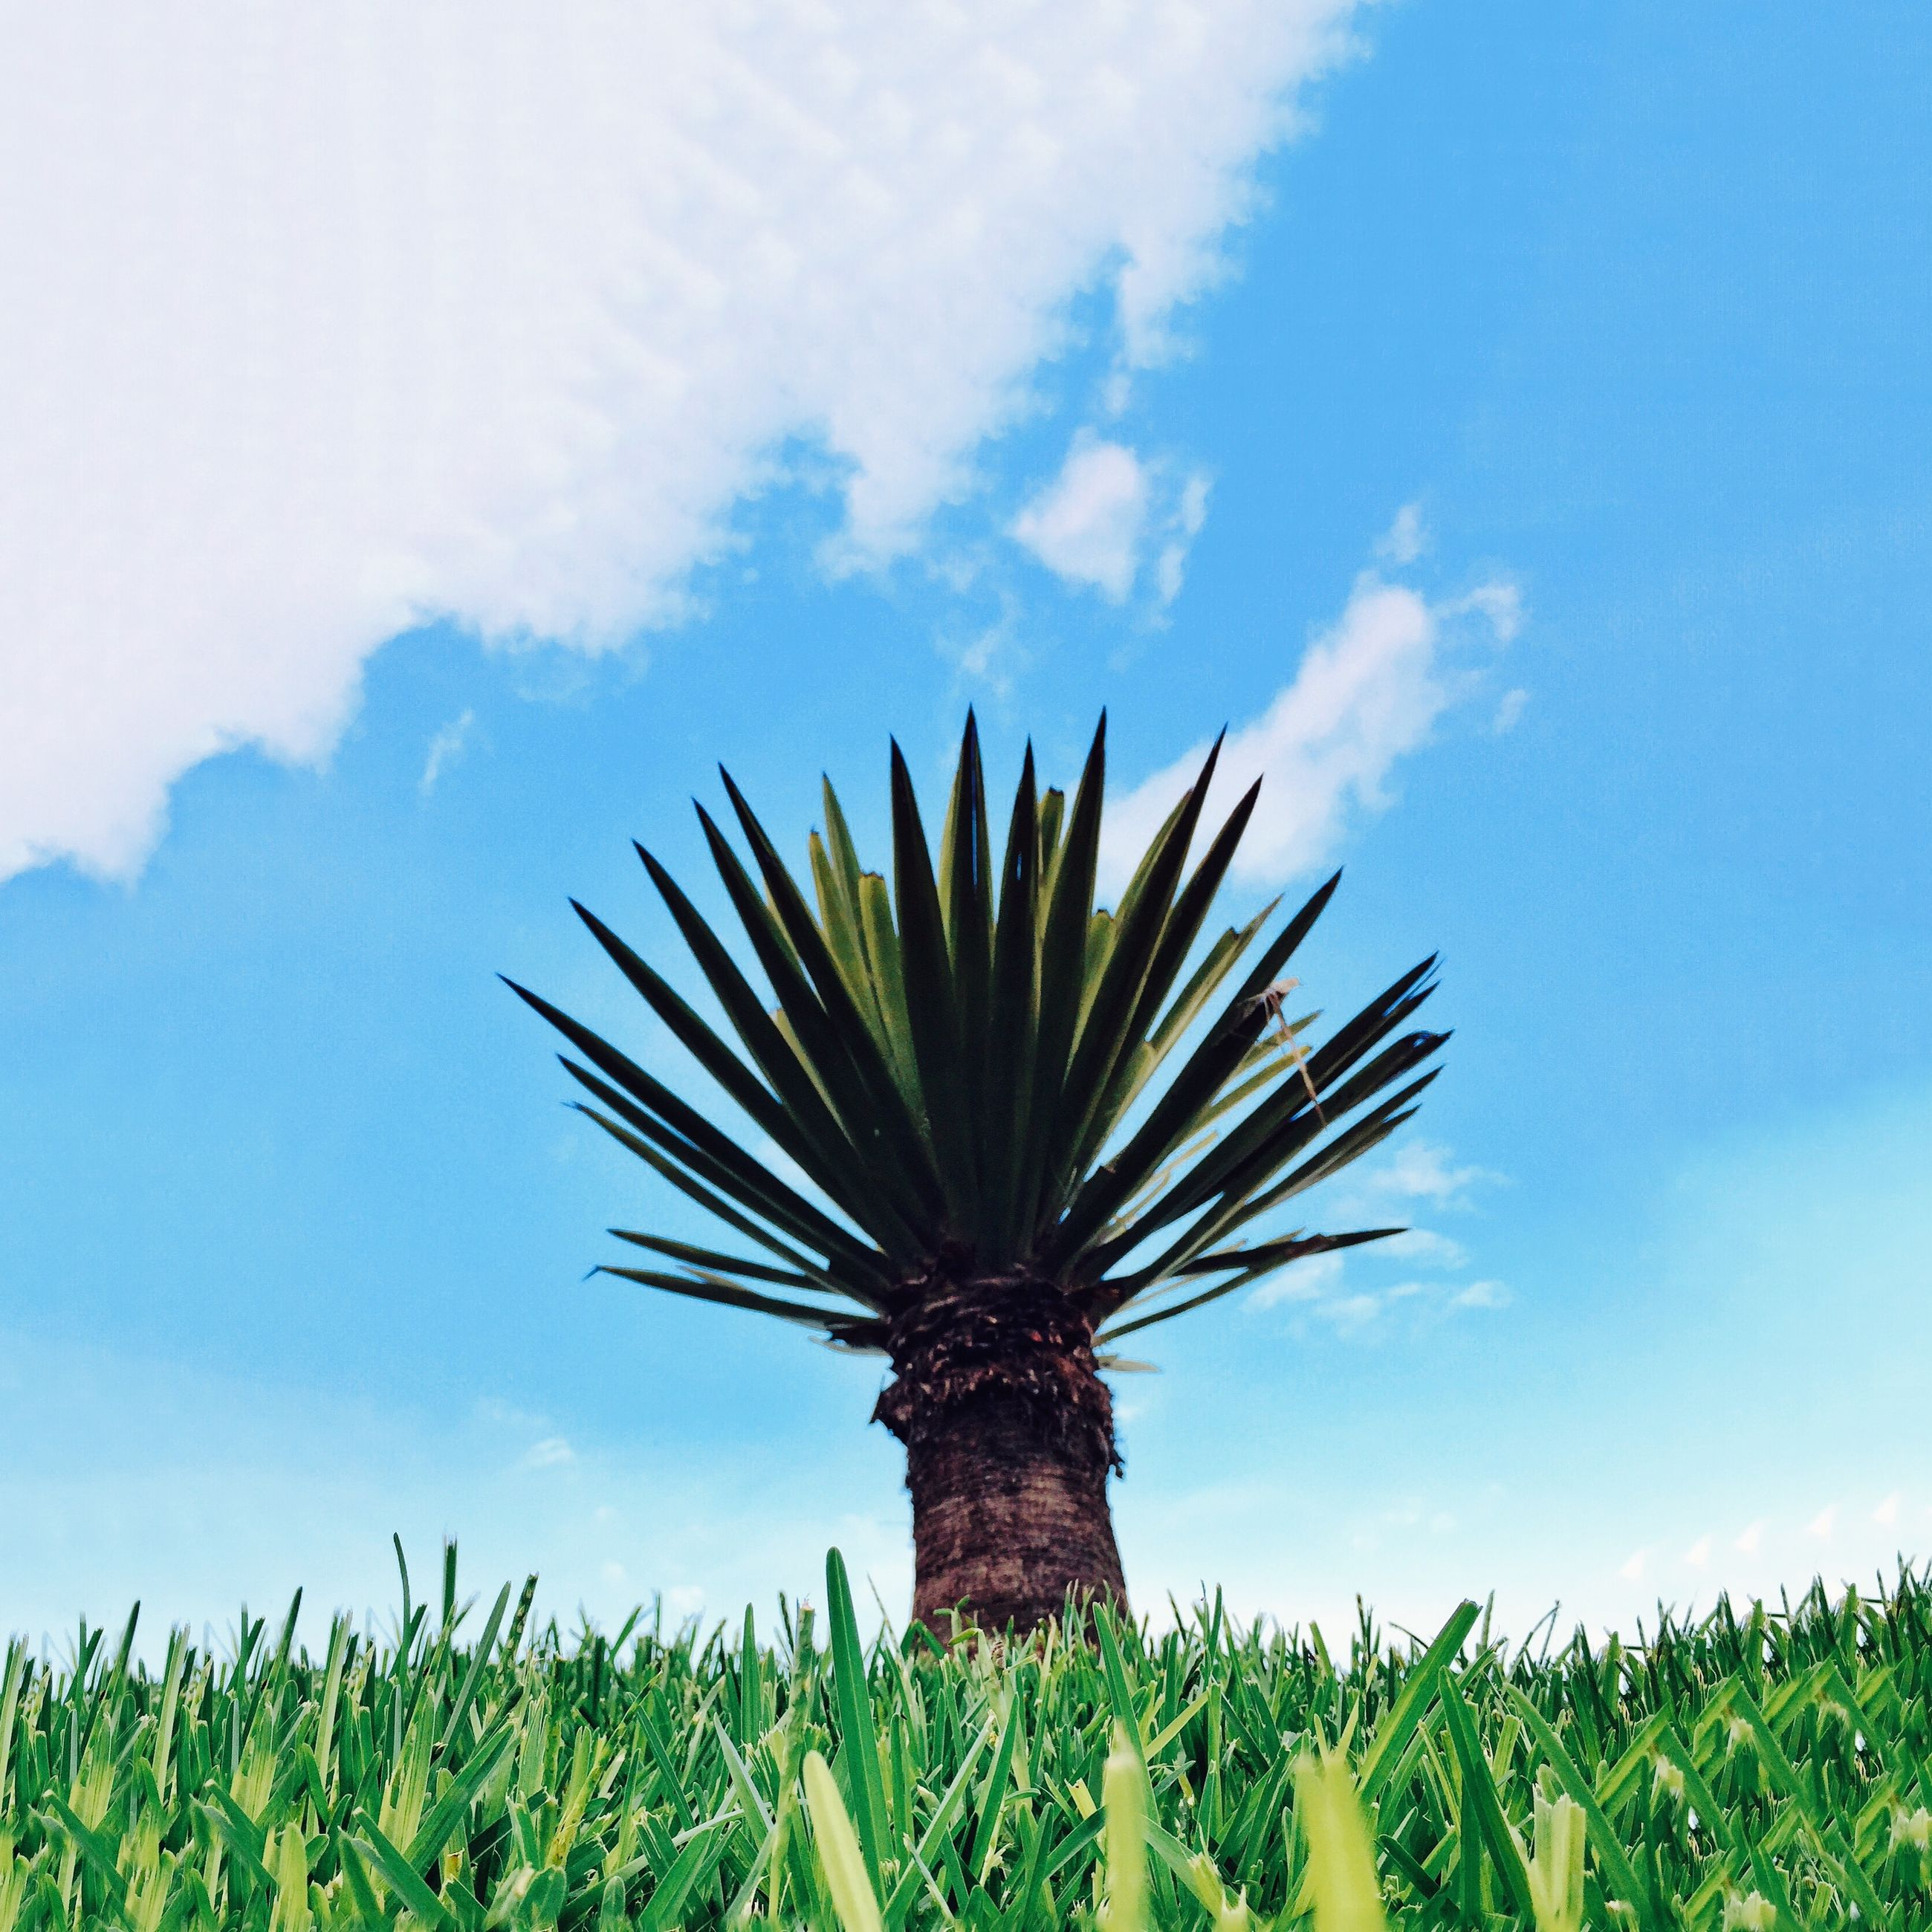 growth, palm tree, sky, low angle view, nature, tree, tranquility, beauty in nature, green color, tranquil scene, grass, plant, field, scenics, cloud, cloud - sky, growing, blue, day, single tree